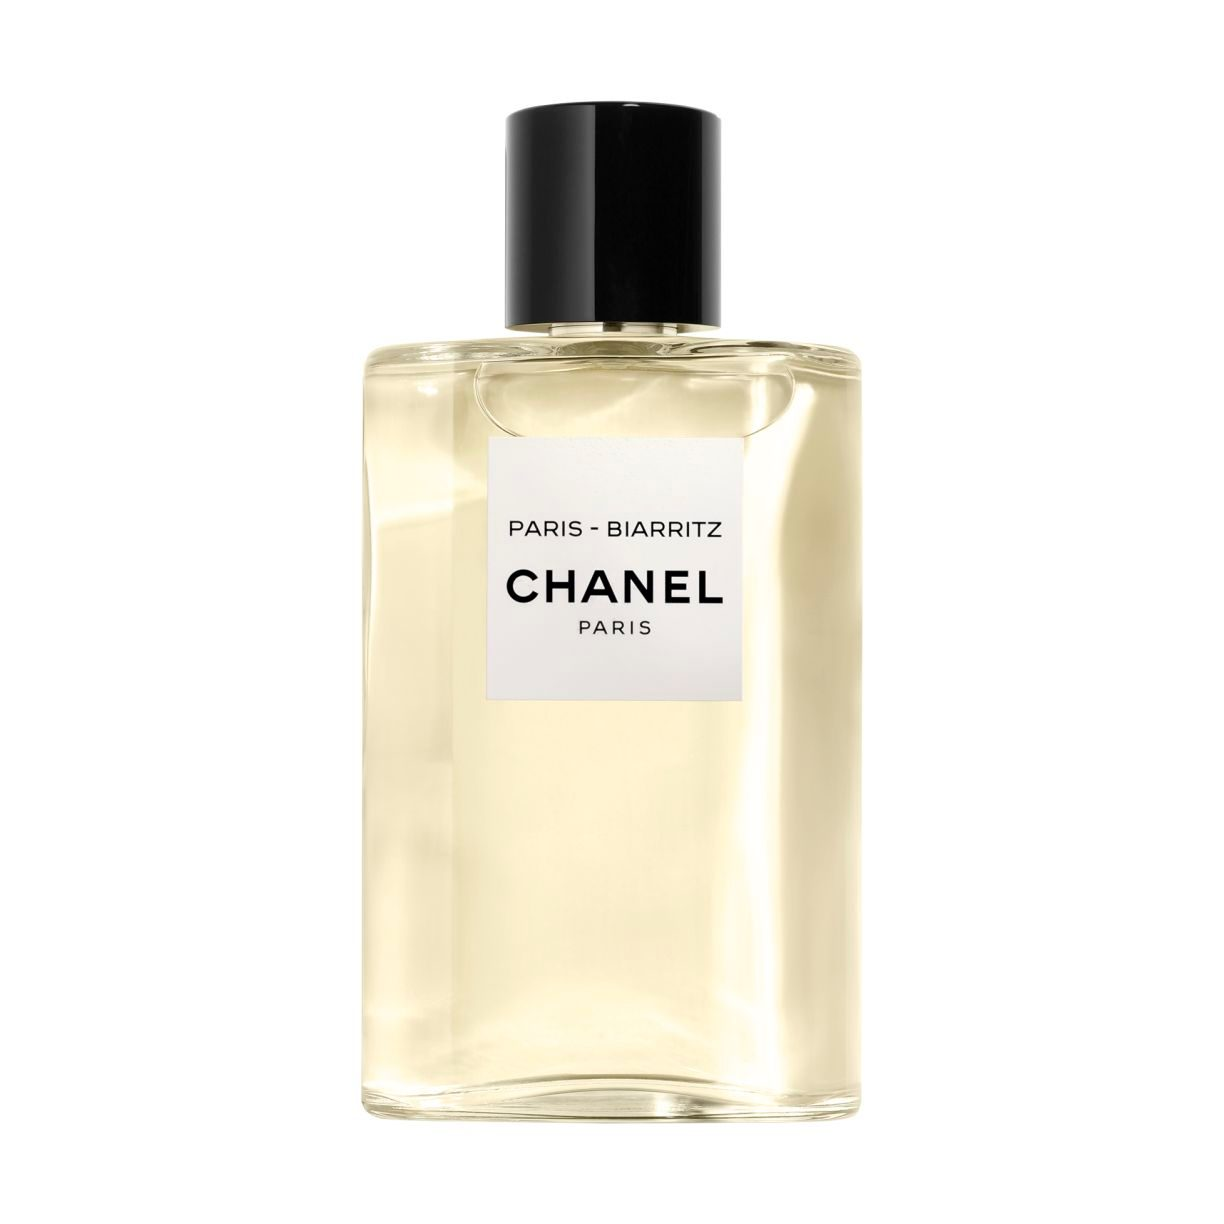 PARIS - BIARRITZ LES EAUX DE CHANEL - WODA TOALETOWA W SPRAYU 125ml